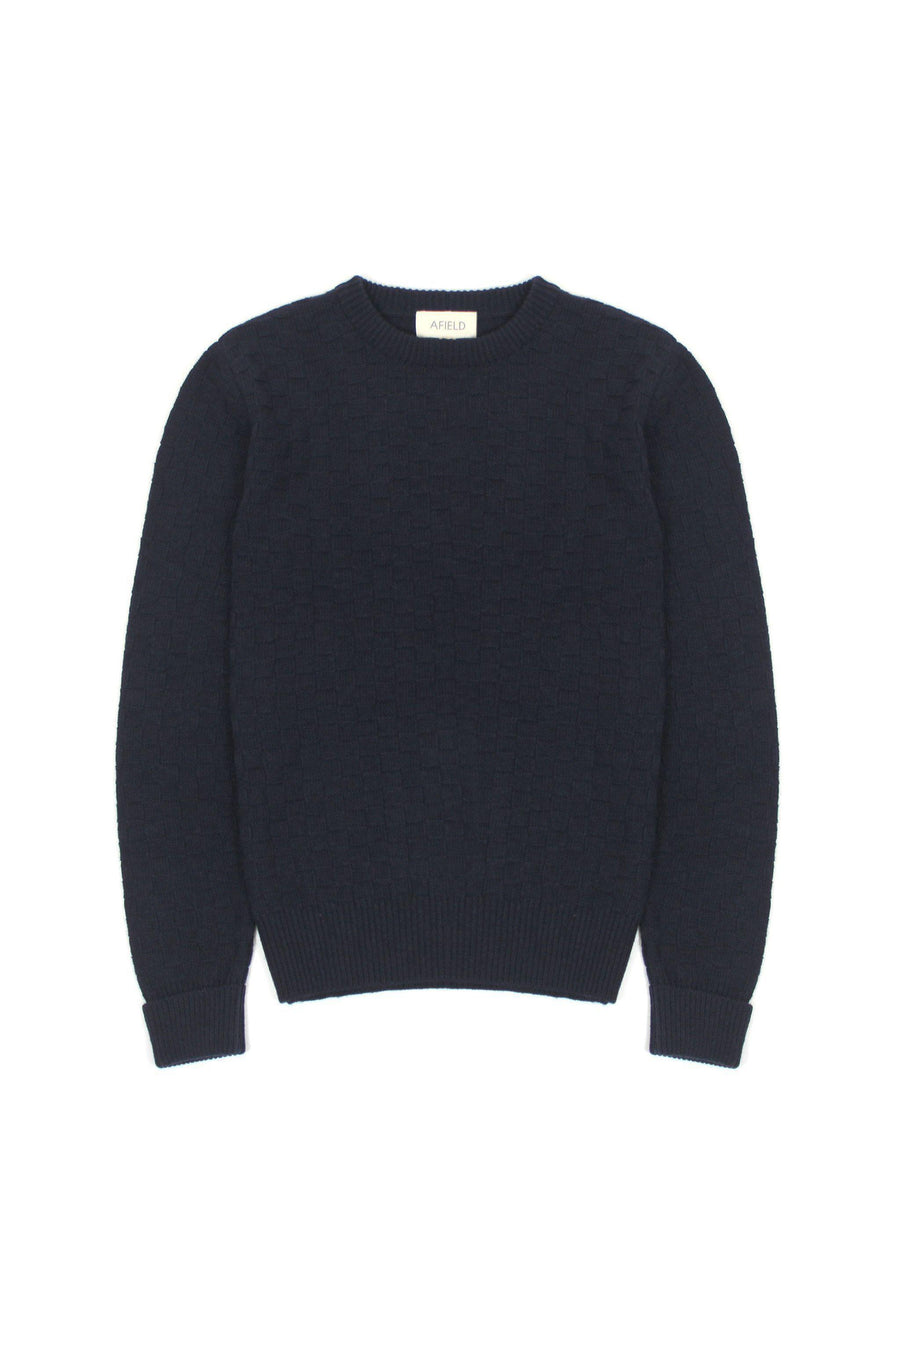 Sweaters Barlow Square Knit Far Afield Conspiracy New York